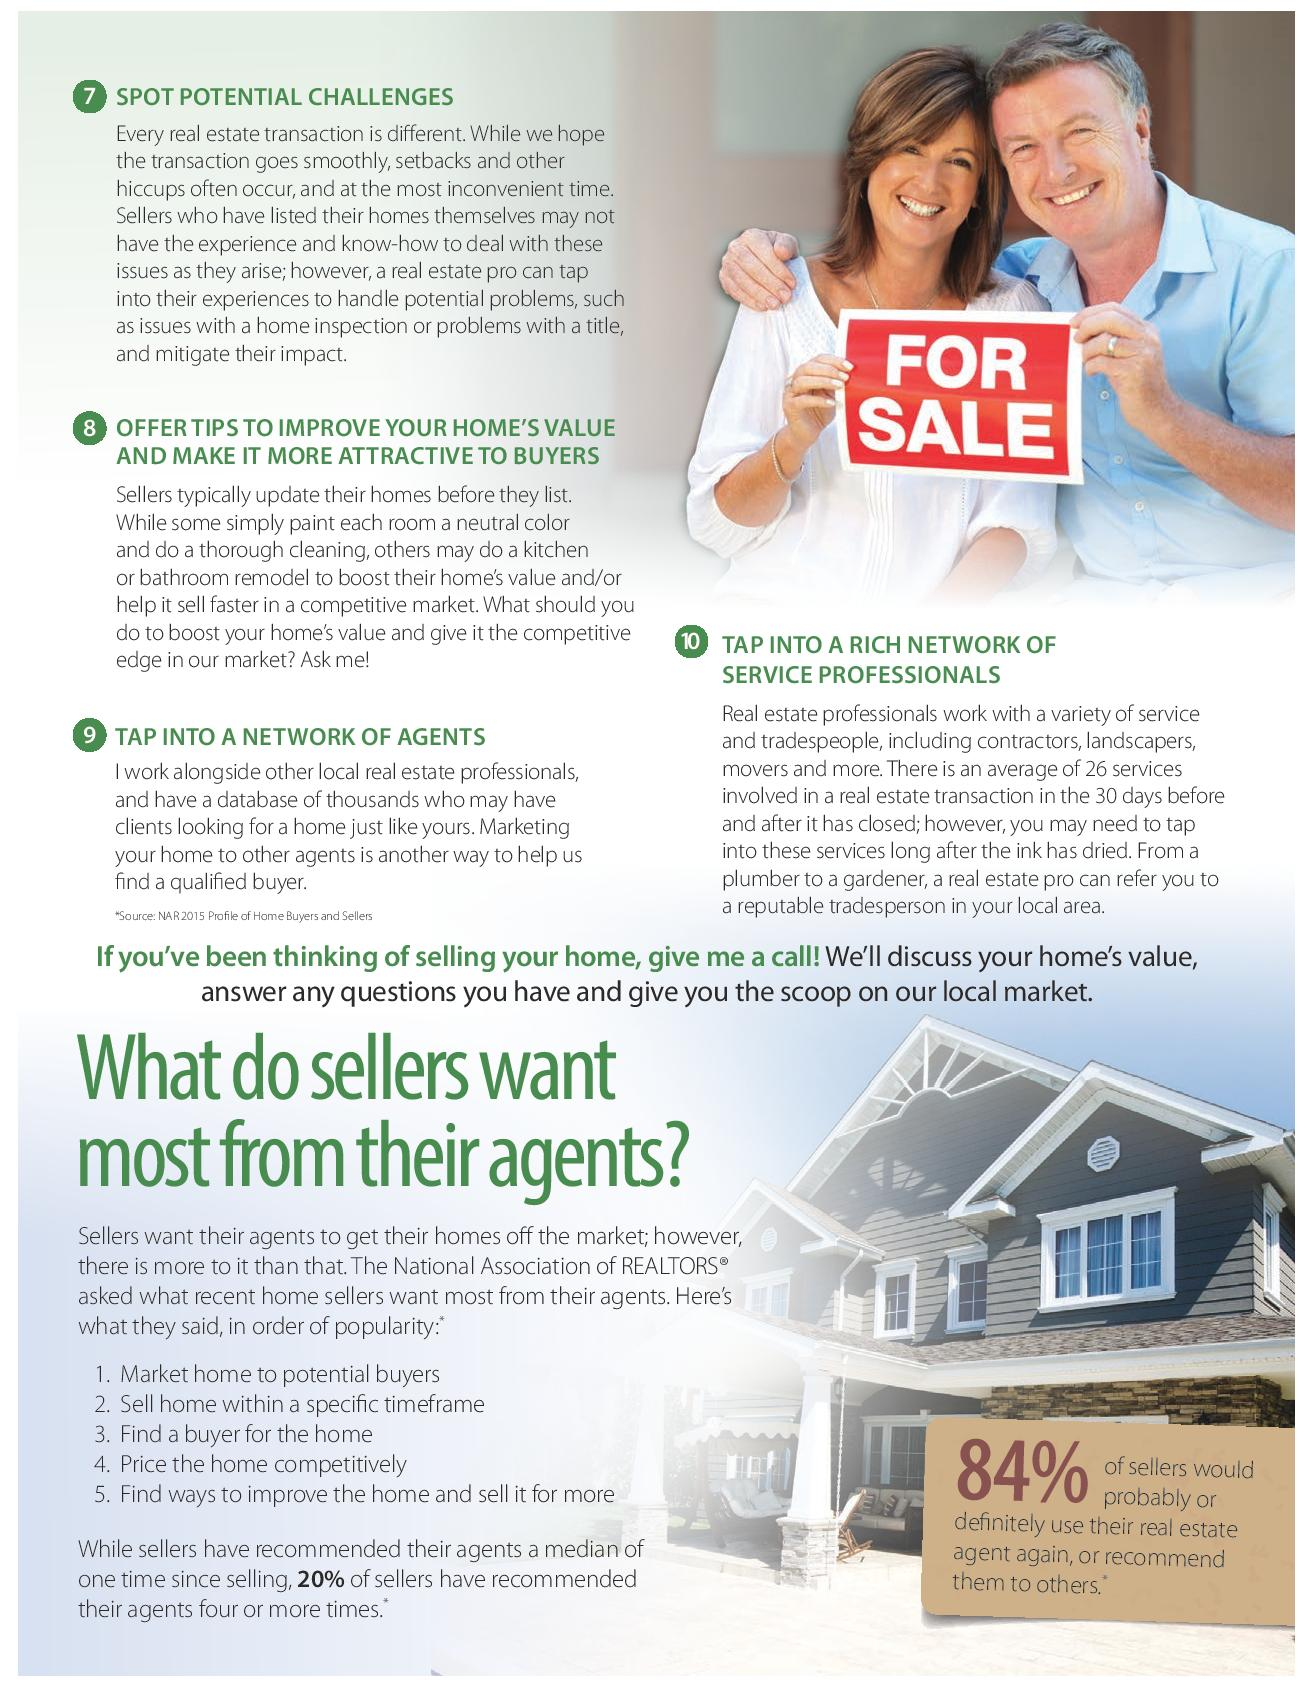 10 Reasons You Need A Real Estate Pro to Sell Your Home Part 2